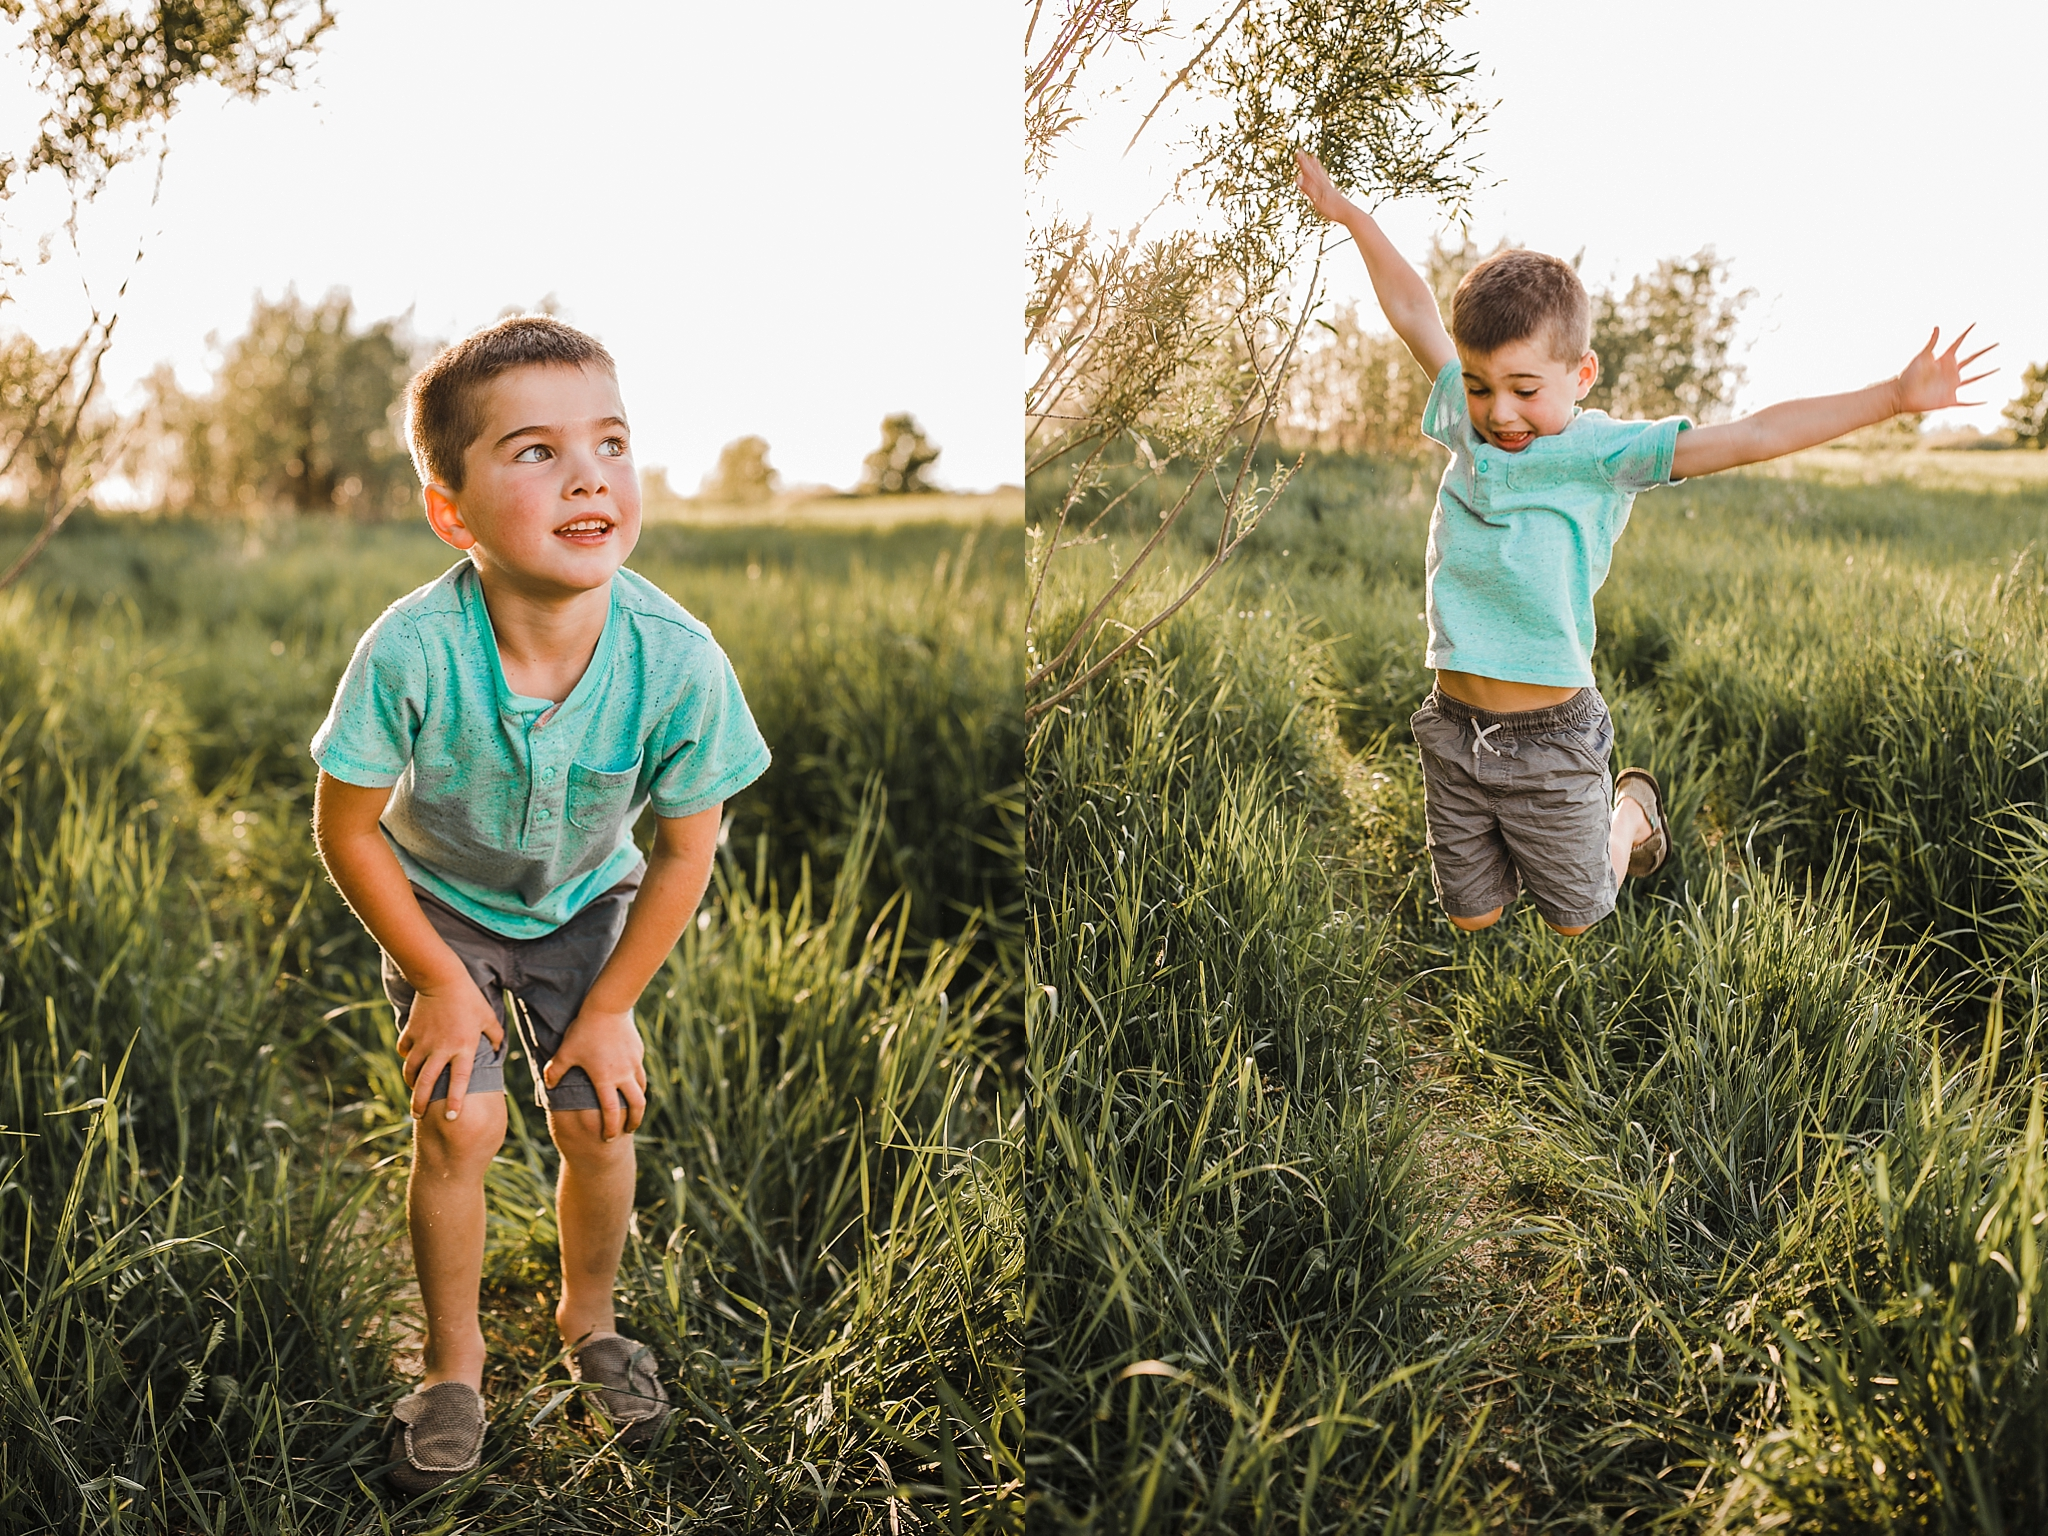 Tanya+ColdLake+MotherhoodSession_0010.jpg